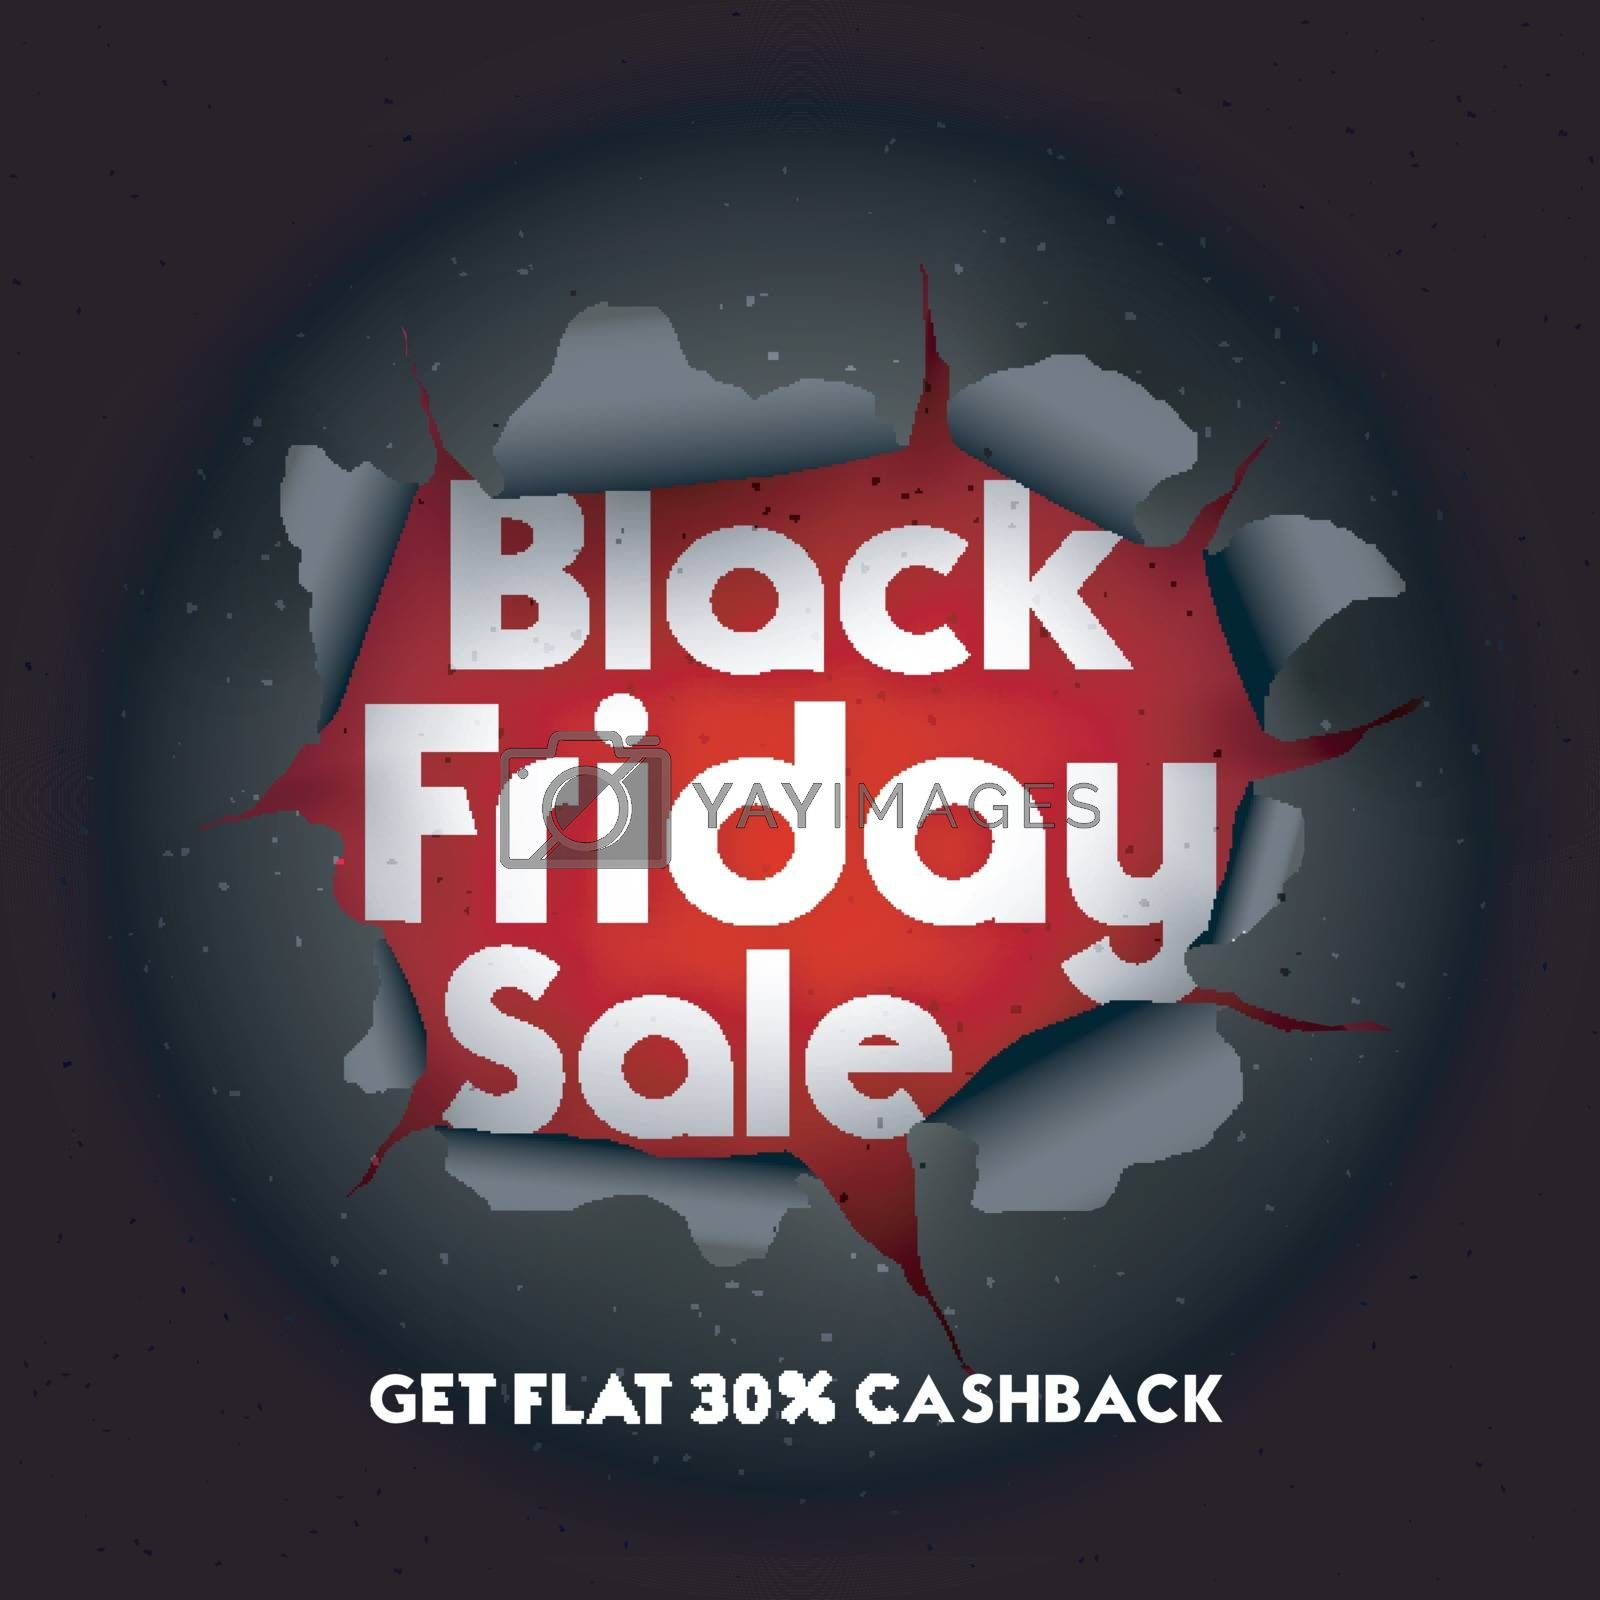 Black Friday Sale with 30% cashback offer. Advertising template or flyer in torn paper style.